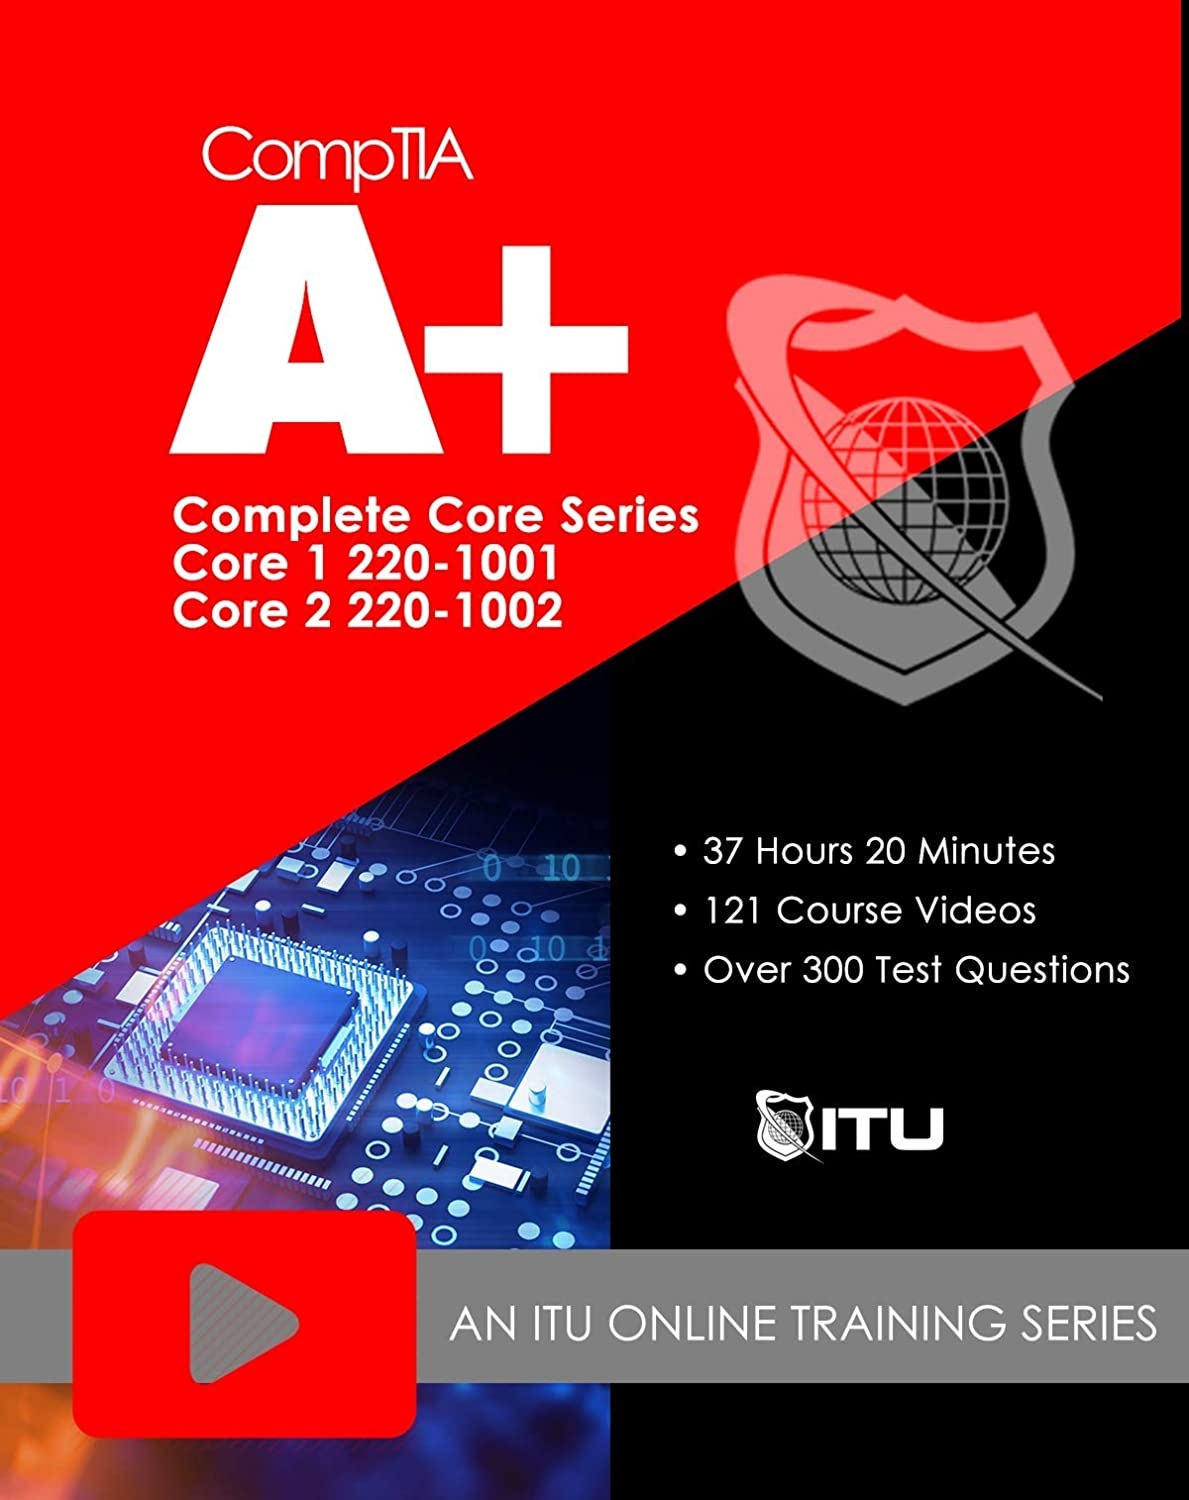 220-1001 / 220-1002 CompTIA A+ Core Series Training Course (Online Registration Code) 71qNu3cUe2L